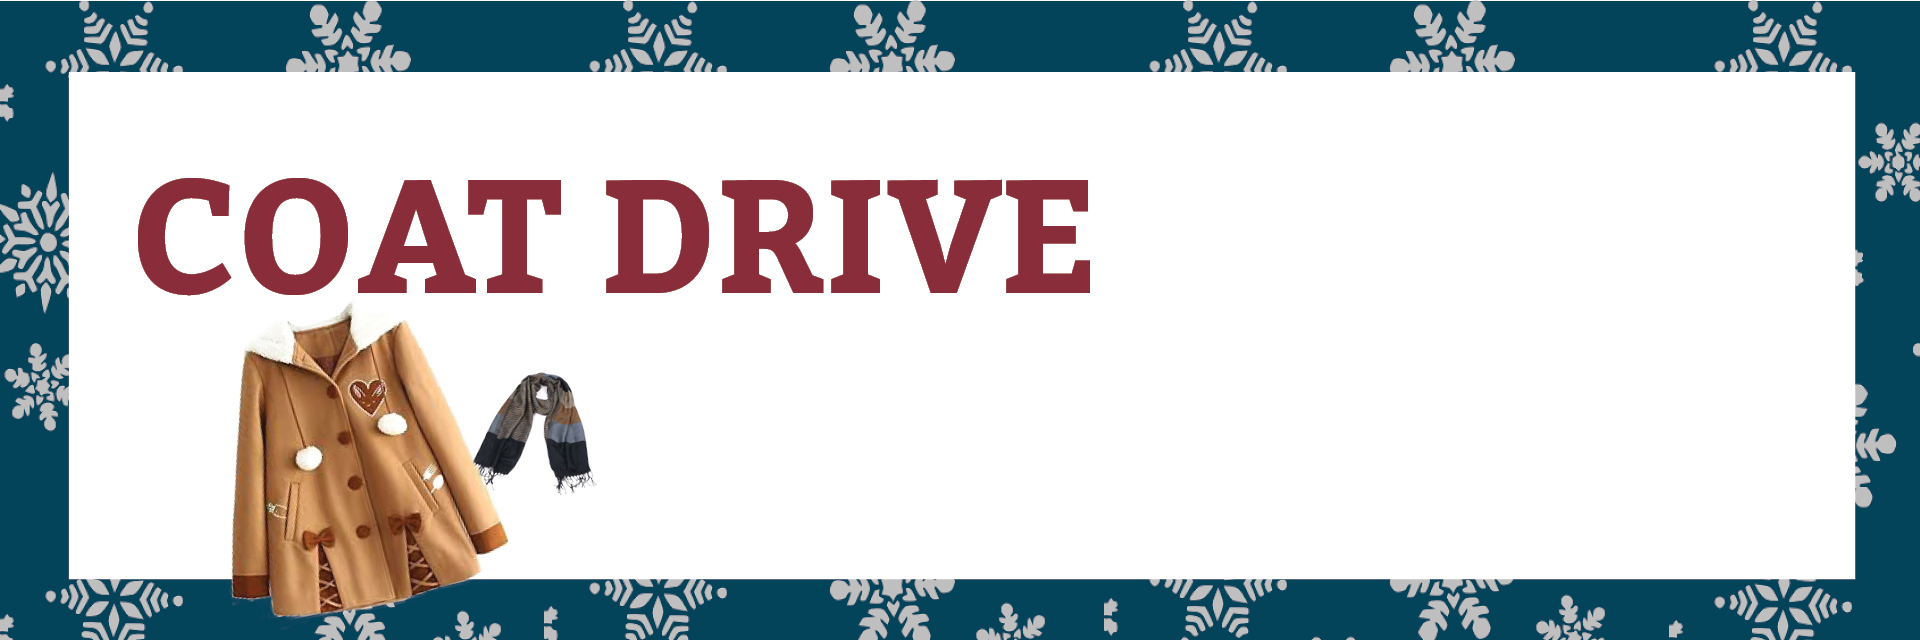 """<a href=""""https://www.congkti.org/coat-drive.html""""                                     target="""""""">                                                                 <span class=""""slider_title"""">                                     Please help us collect coats!                                </span>                                                                 </a>                                                                                                                                                                                       <span class=""""slider_description"""">Now through December 18th....</span>                                                                                     <a href=""""https://www.congkti.org/coat-drive.html"""" class=""""slider_link""""                             target="""""""">                             Donation information here......                            </a>"""